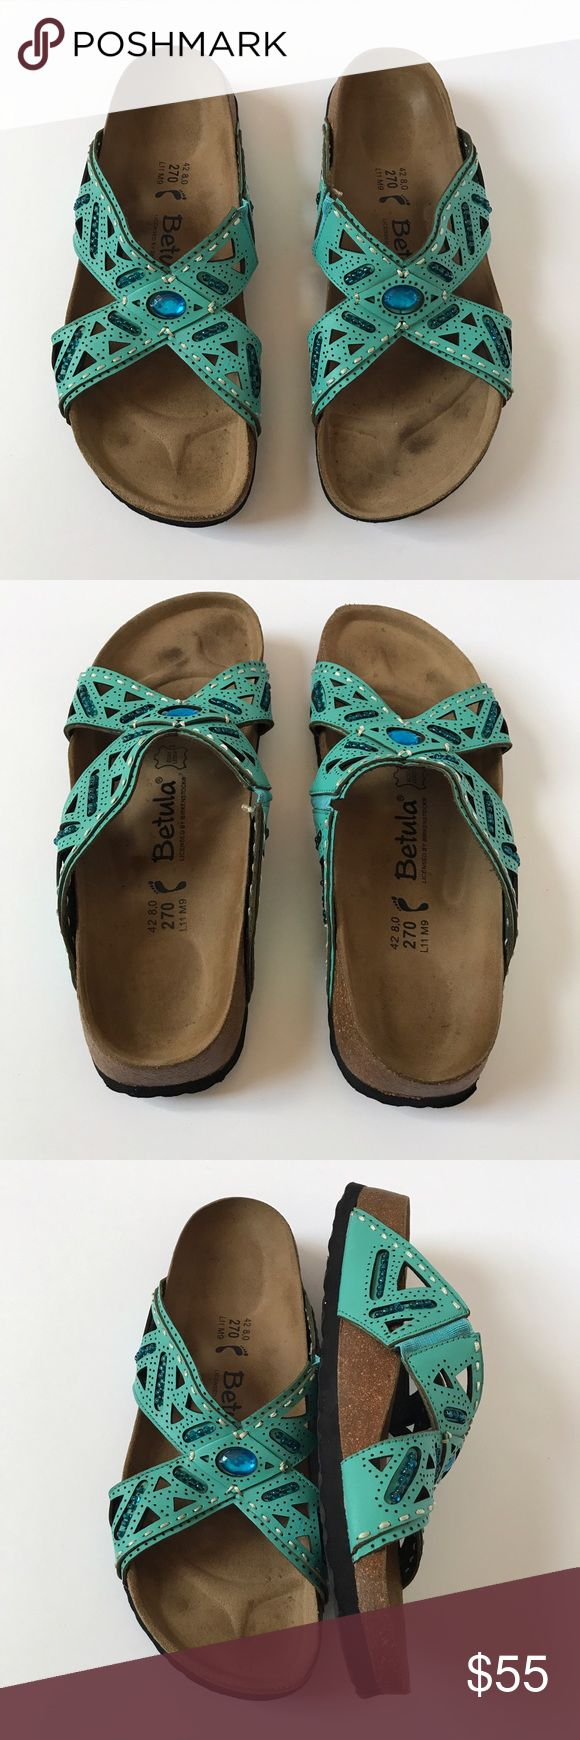 Betula  Beaded Sandals by Birkenstock Size 42 These Betula sandals by Birkenstock are in great used condition.  As you can see from the photos, they have very little wear.  They are a turquoise/teal blue and have beading on them.  Size 42, which, according to their website, is a size 11-11.5. (The Posh app automatically fills in a size 12 for this shoe, so I sized it as a 41 to match the website sizing! Check your sizing carefully!) They are a narrow as indicated by the filled in foot.  L11…